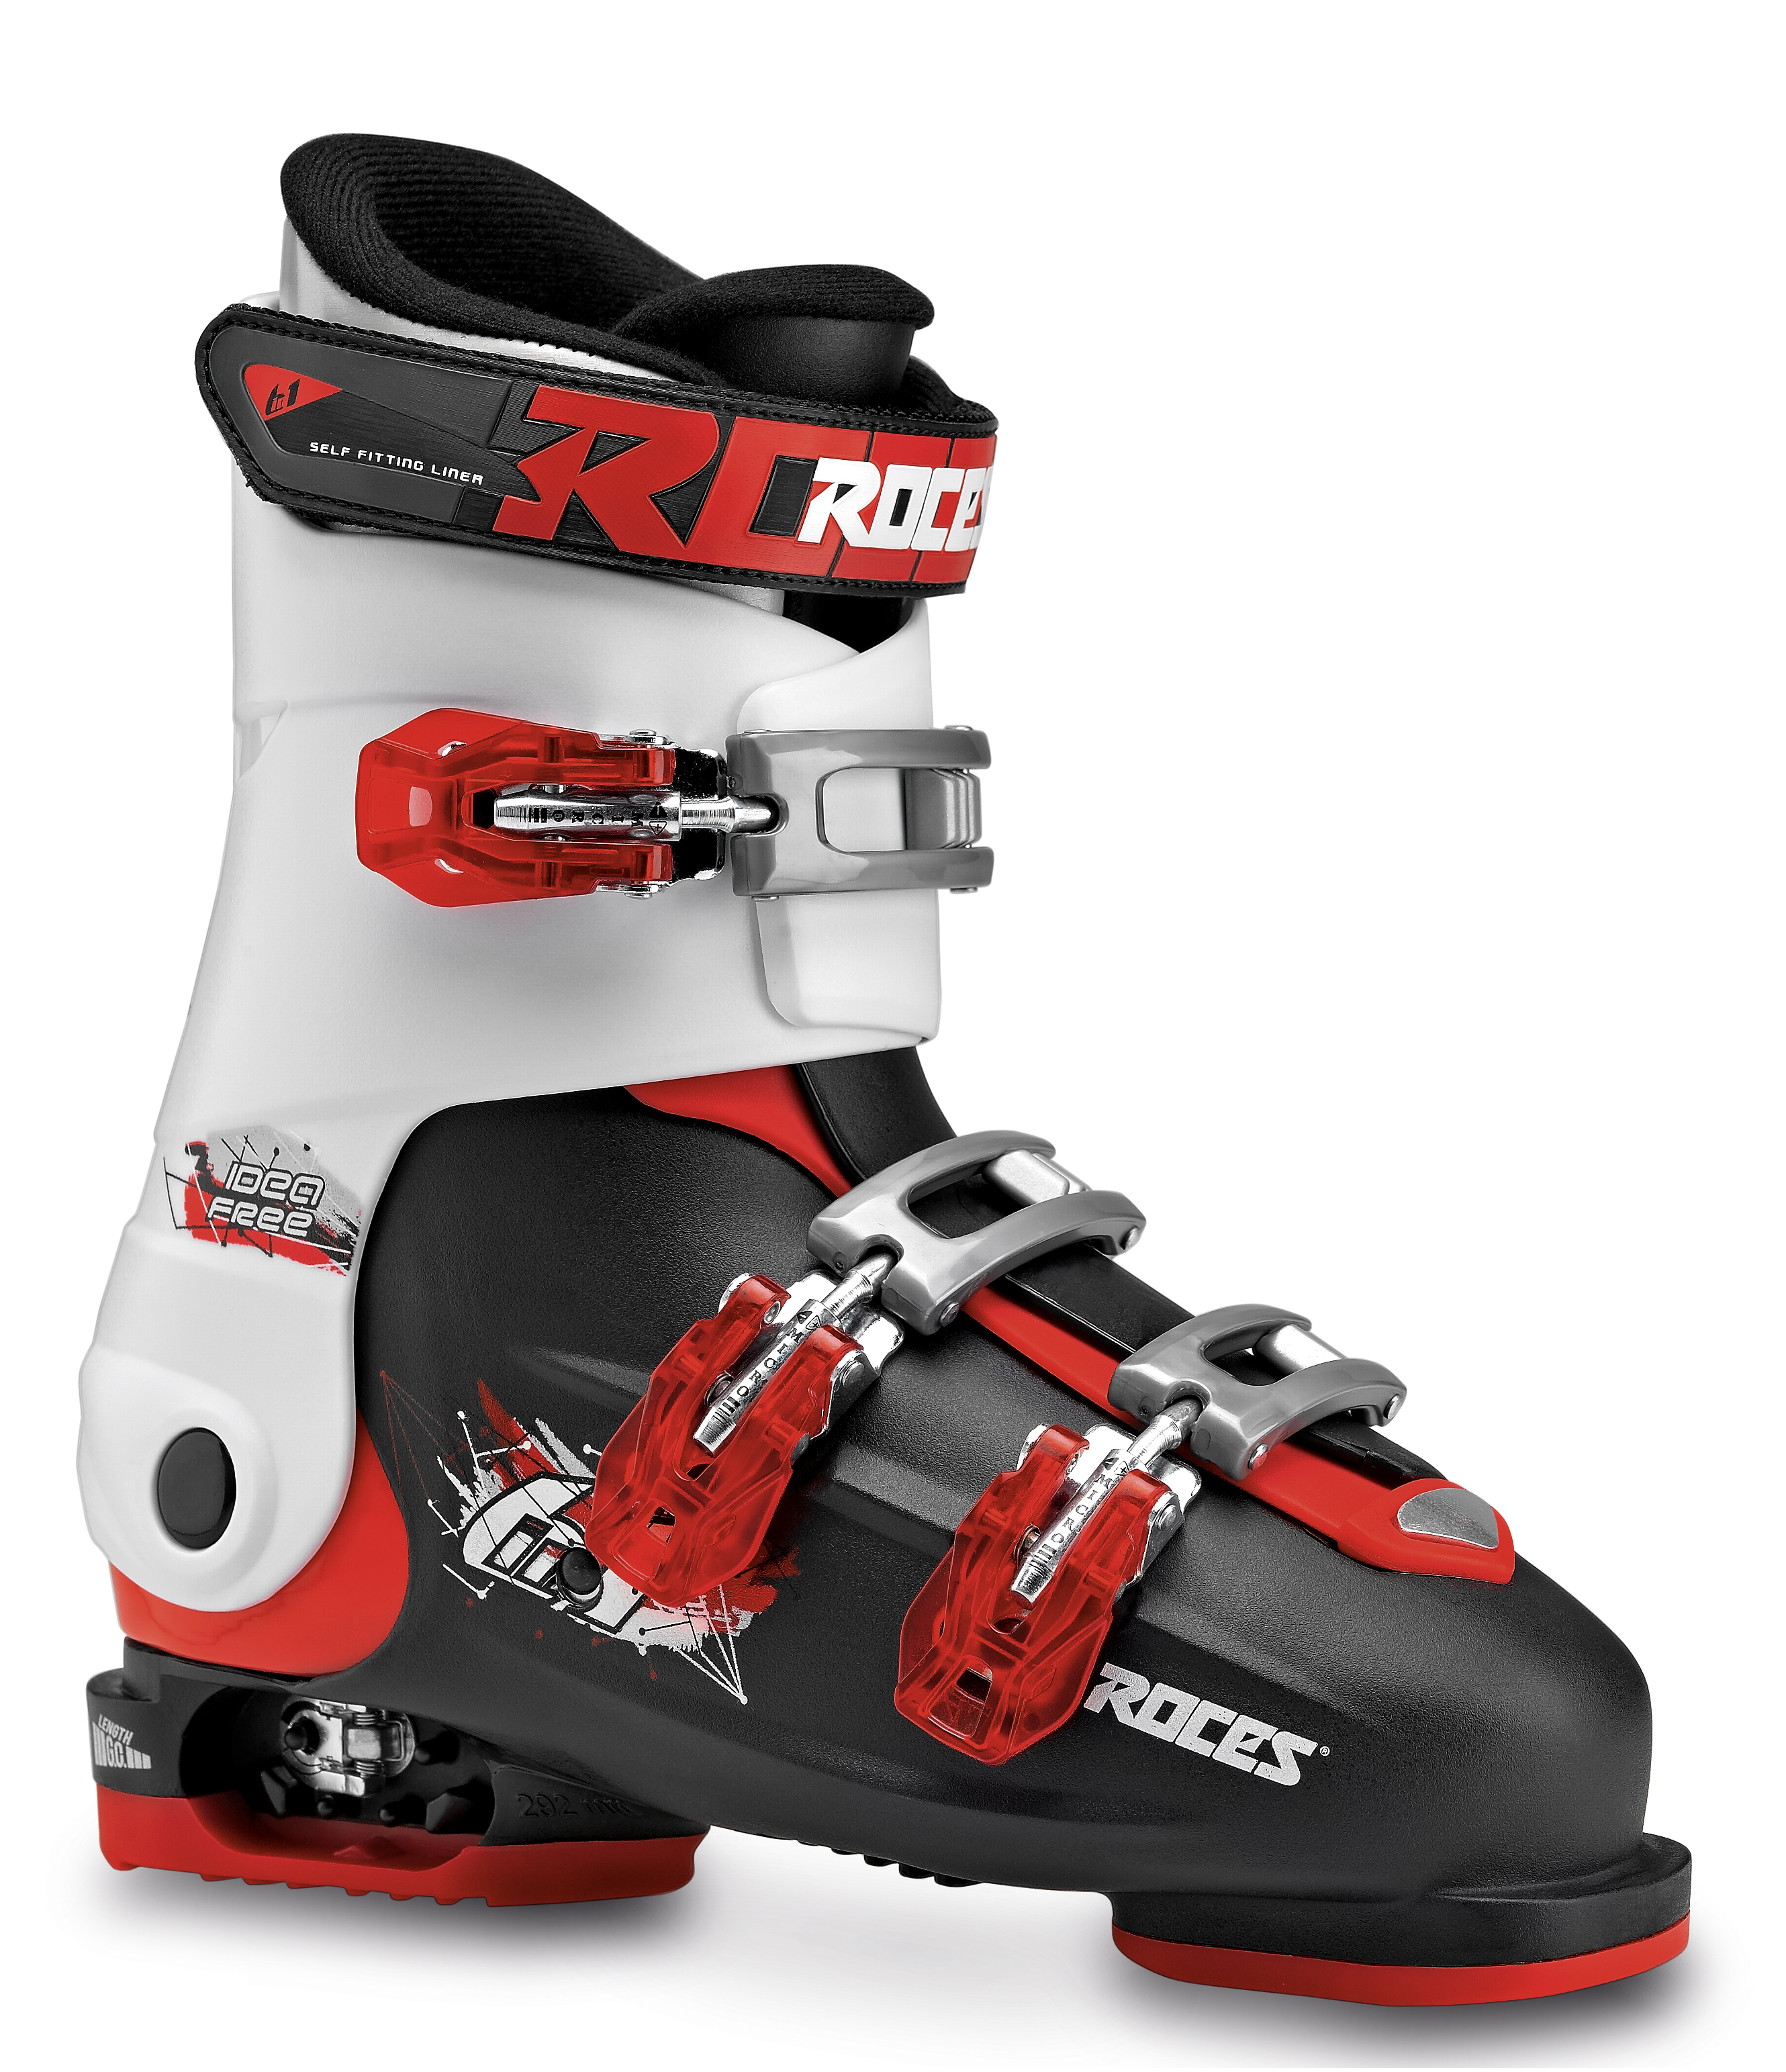 a8dd7f847f5 Roces Idea Free 36 tot 40 (Black-White-Red) - onlineskishop.nl